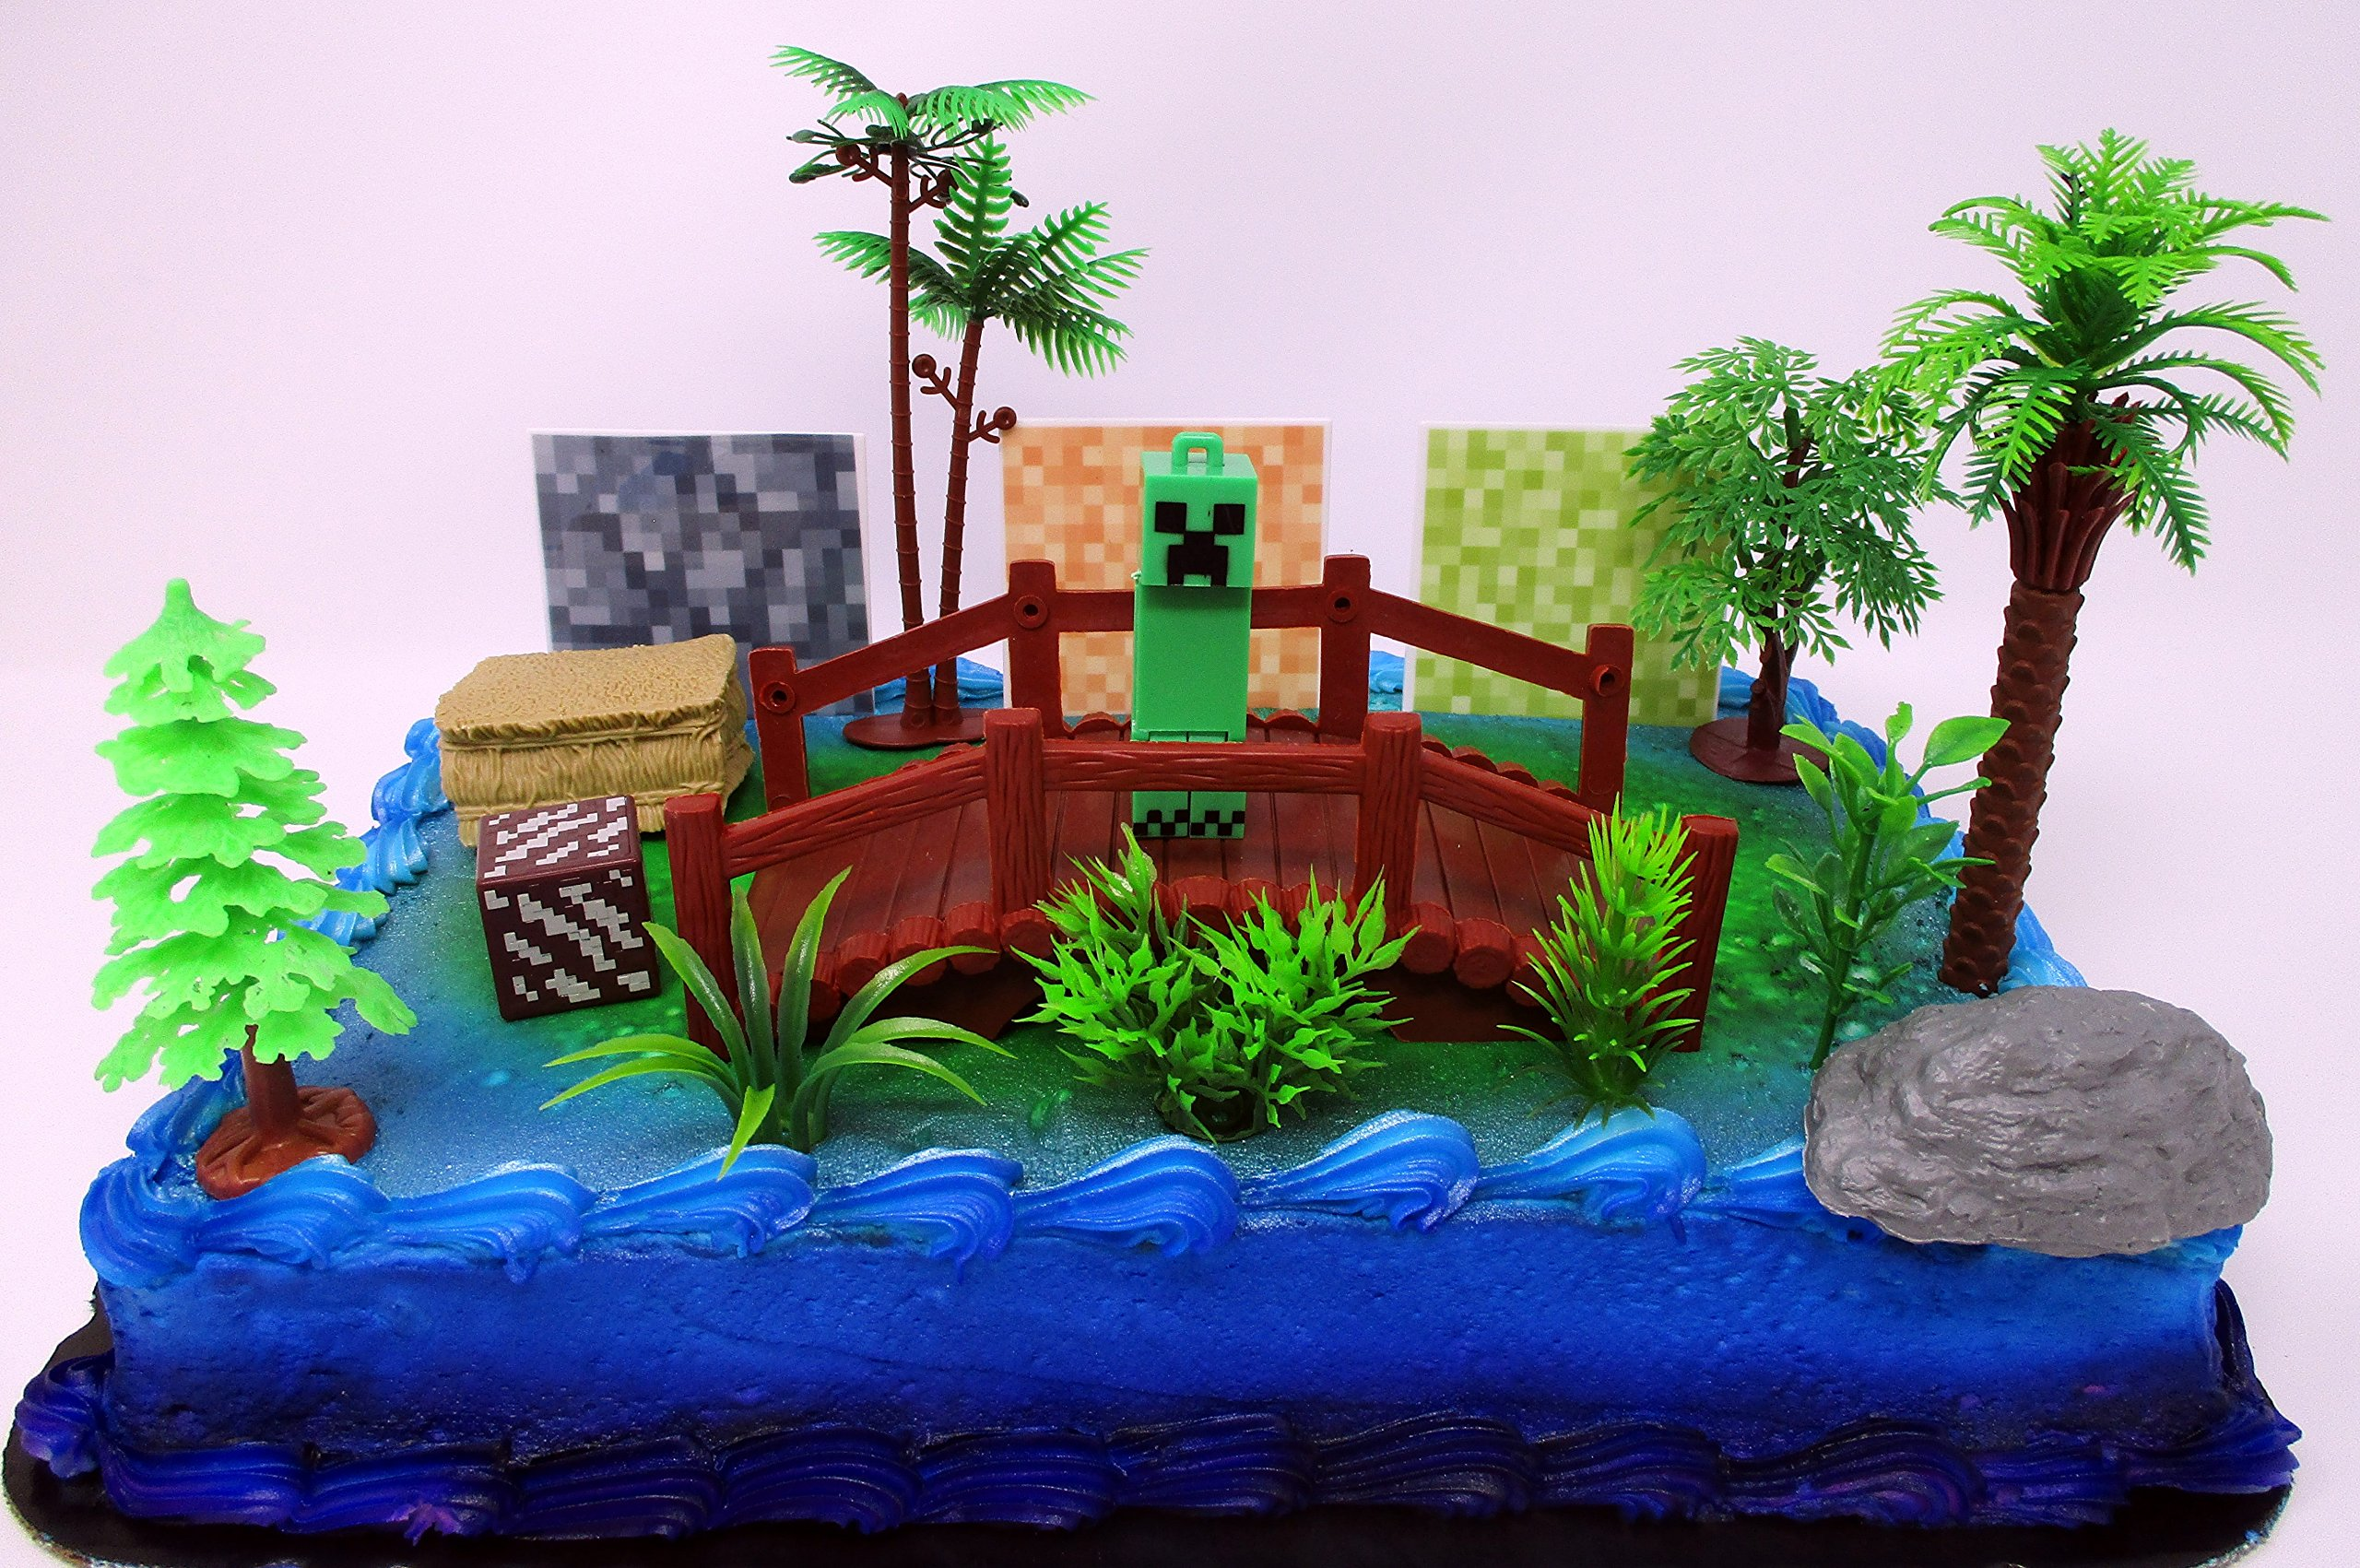 Minecraft Creeper Themed Birthday Cake Topper Set Featuring